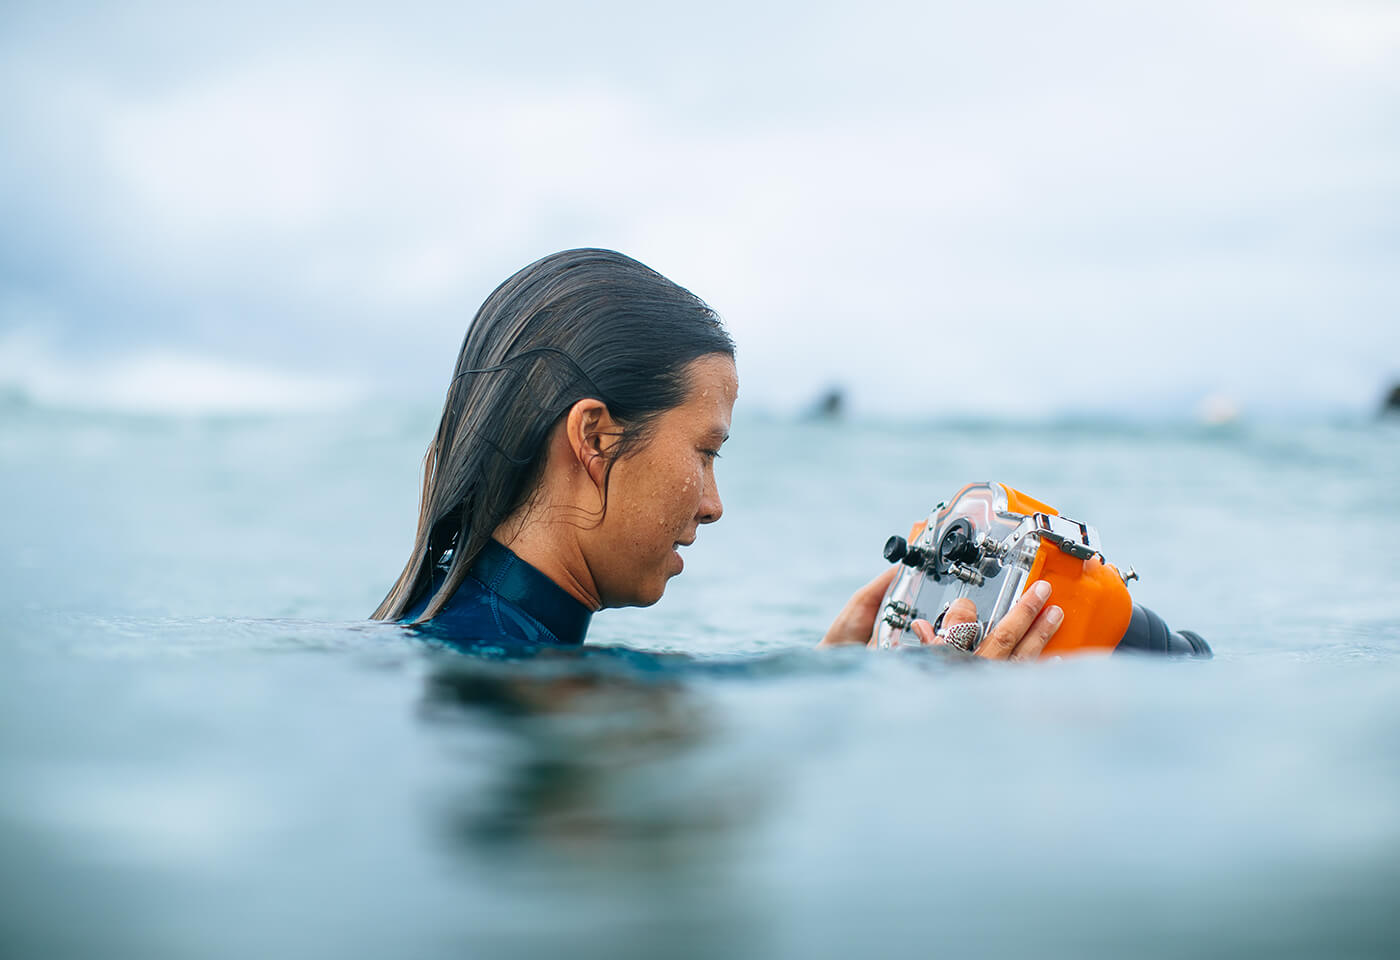 fran miller using an underwater housing – photo by Ed Sloane